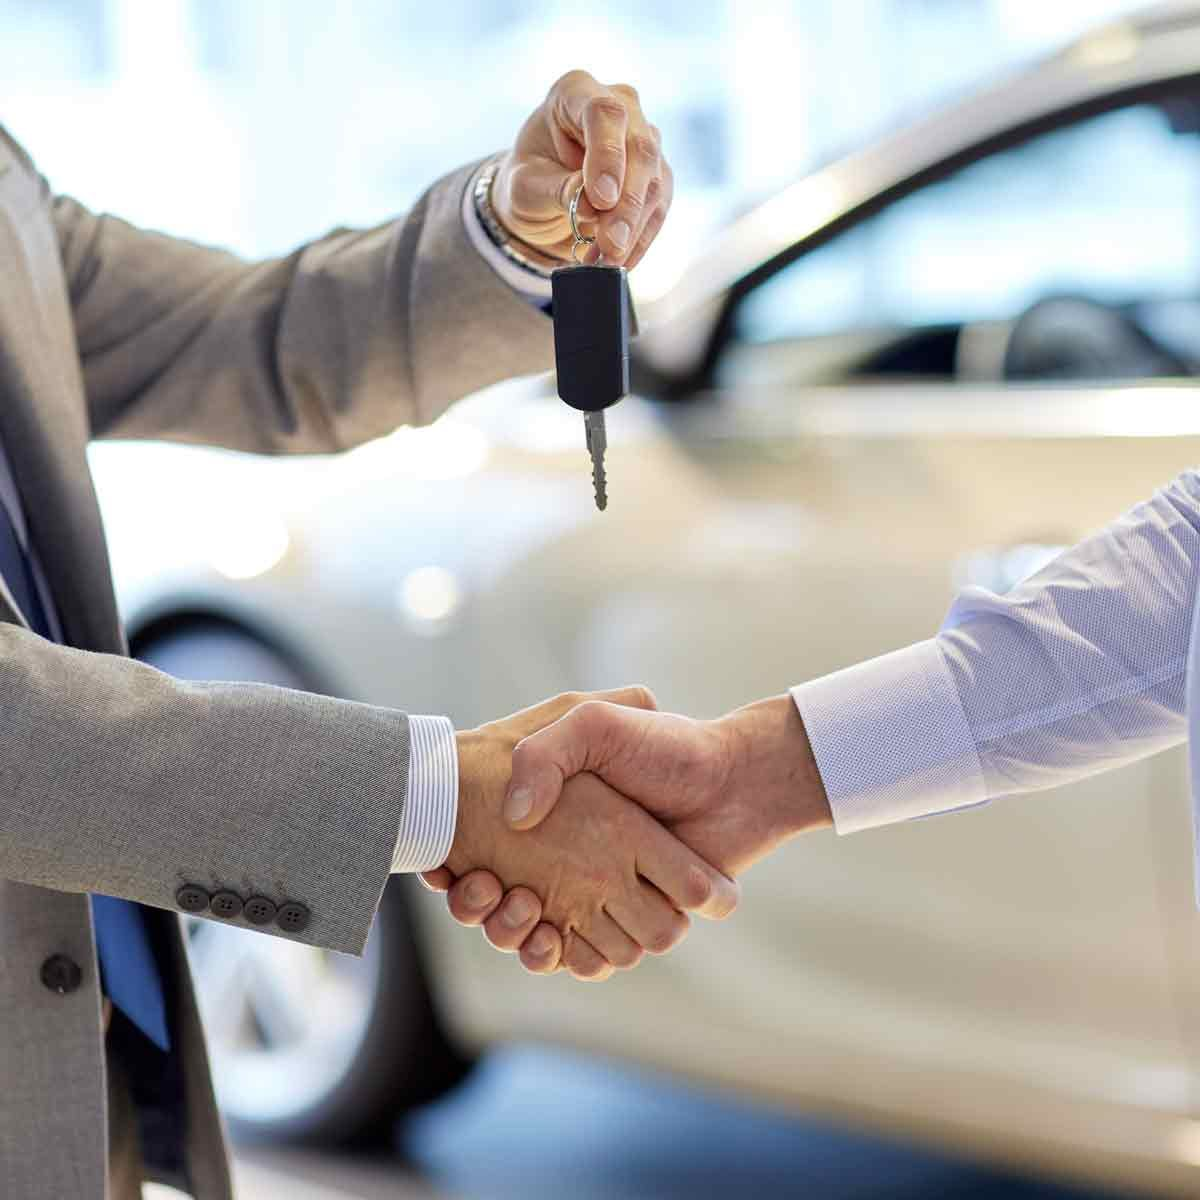 close-up-of-dealer-giving-key-to-new-owner-and-shaking-hands-in-auto-show